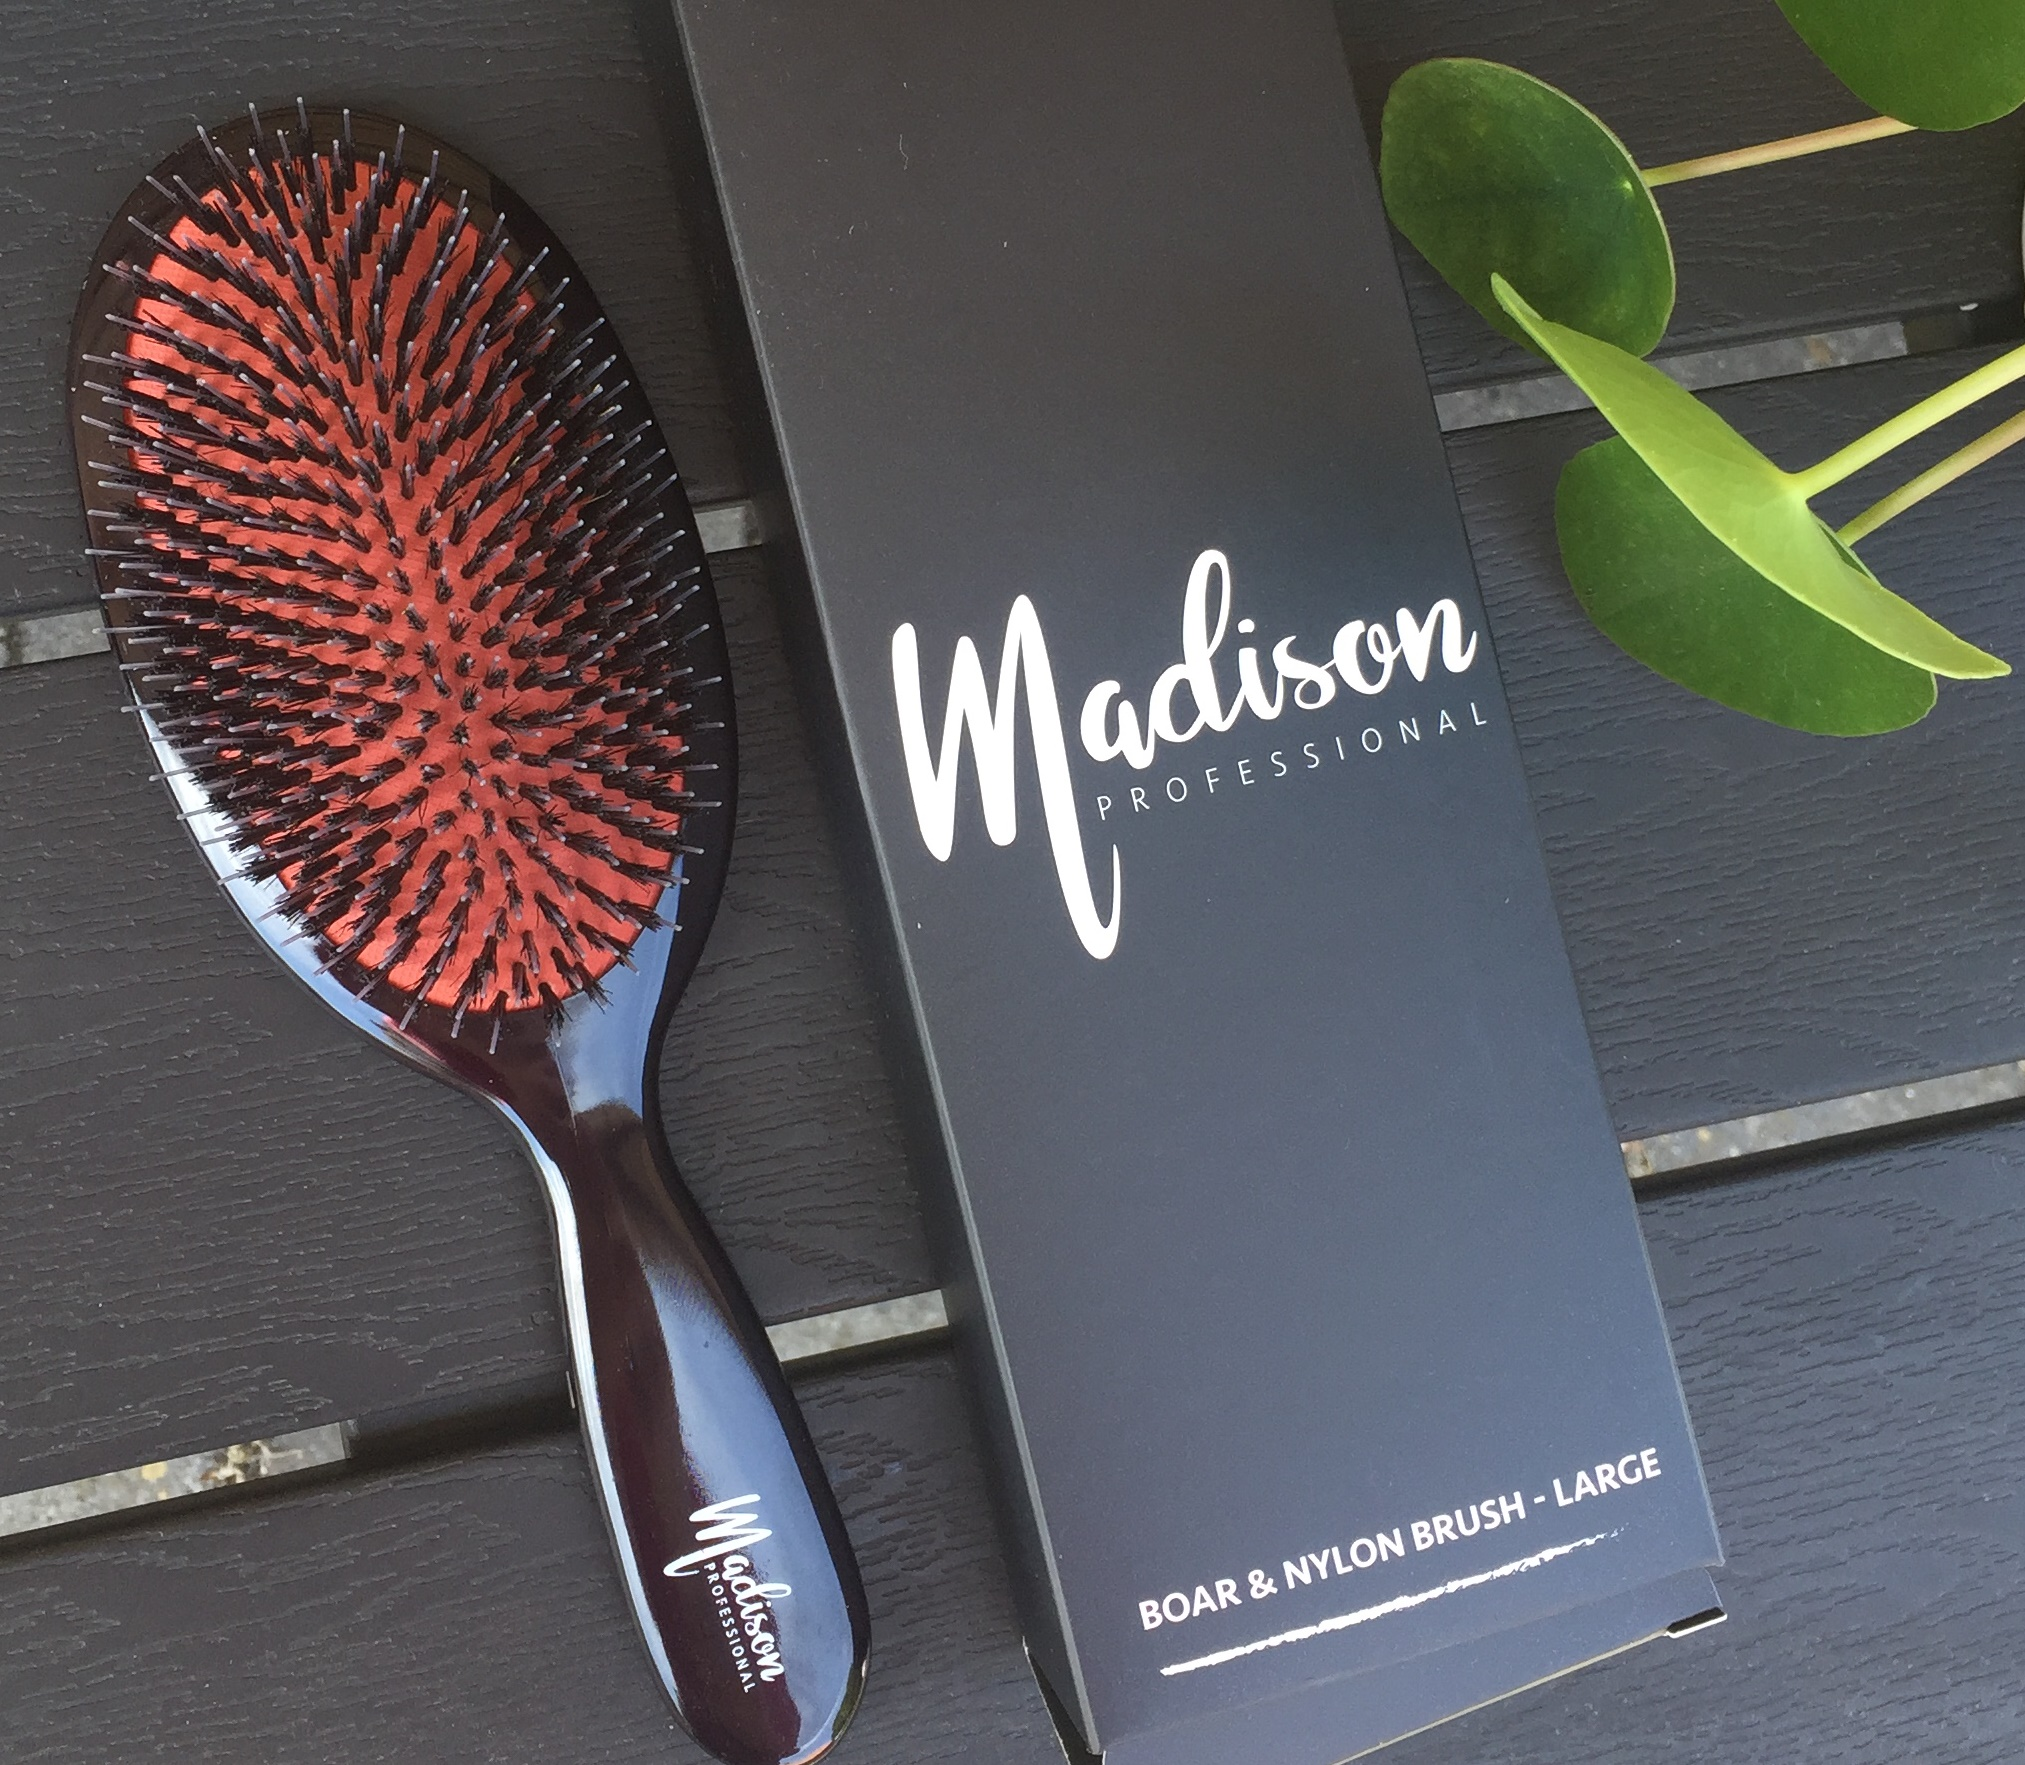 Madison Professional, Billigvoks.dk, Hårbørster, Boar & Nylon Brush, Soft Detangling brush, Hyper Flex Boar Brush,